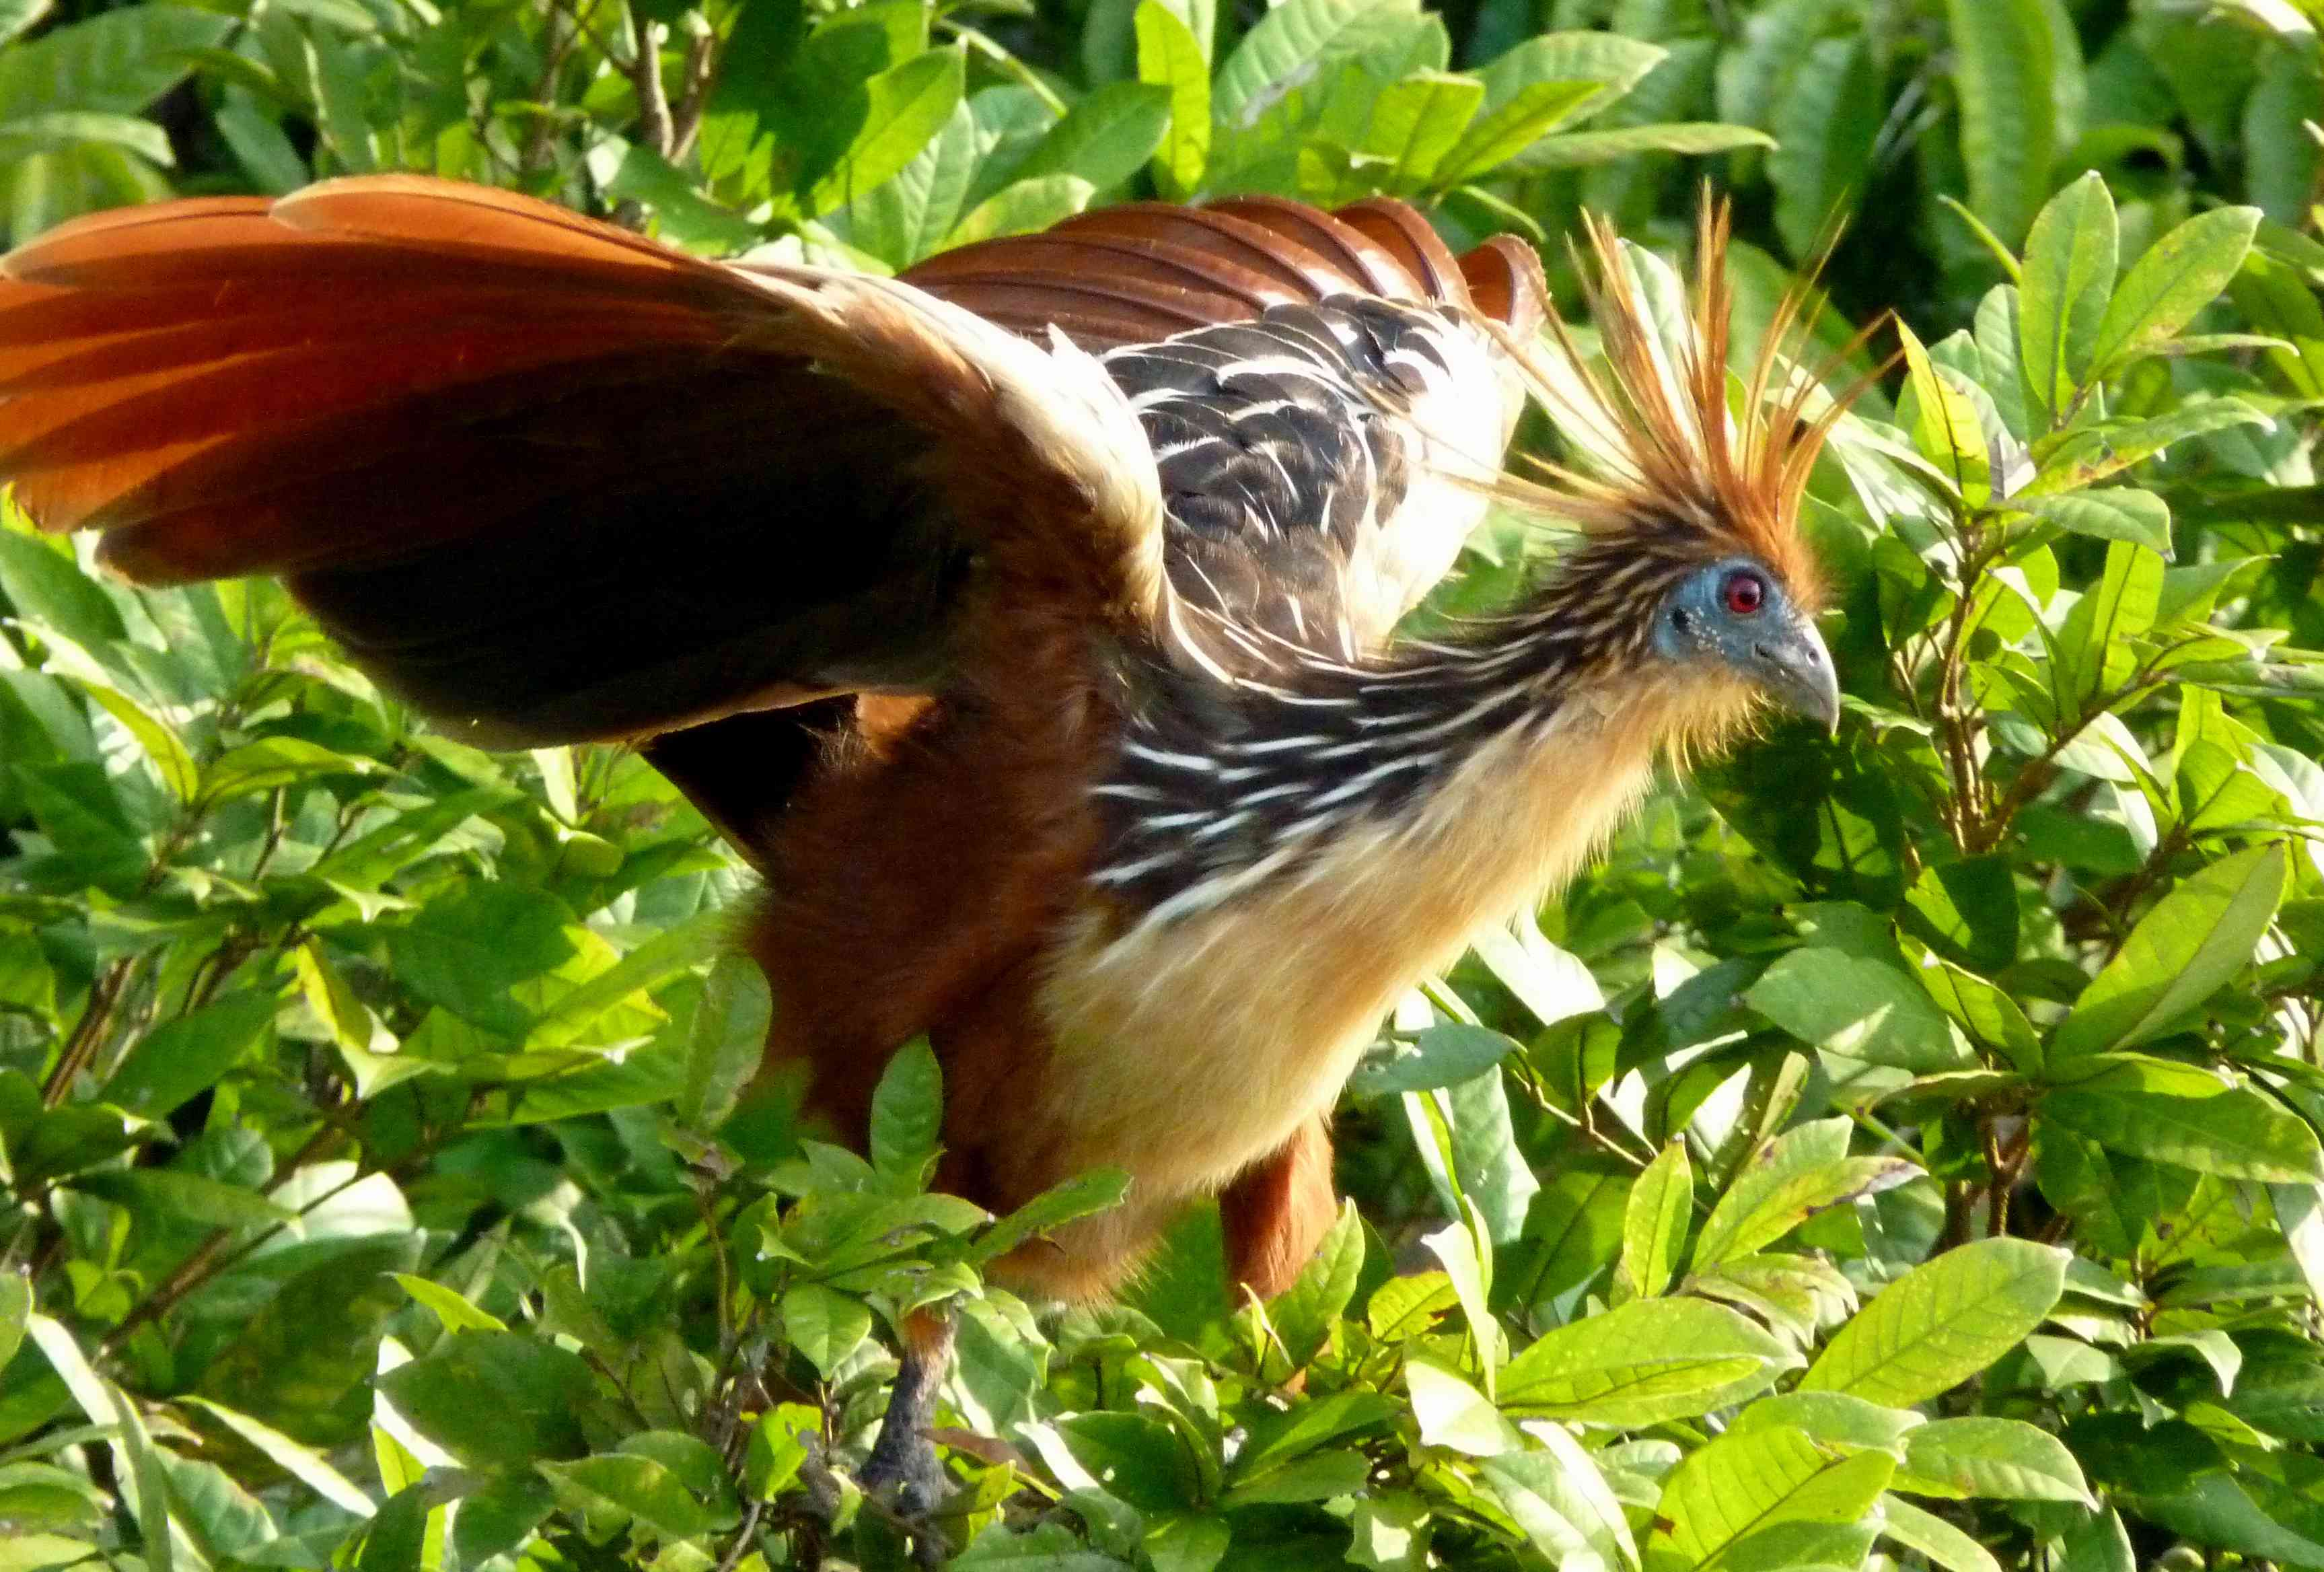 A hoatzin, with spiky orange head feathers with its wings spread open on bright green leafy plant